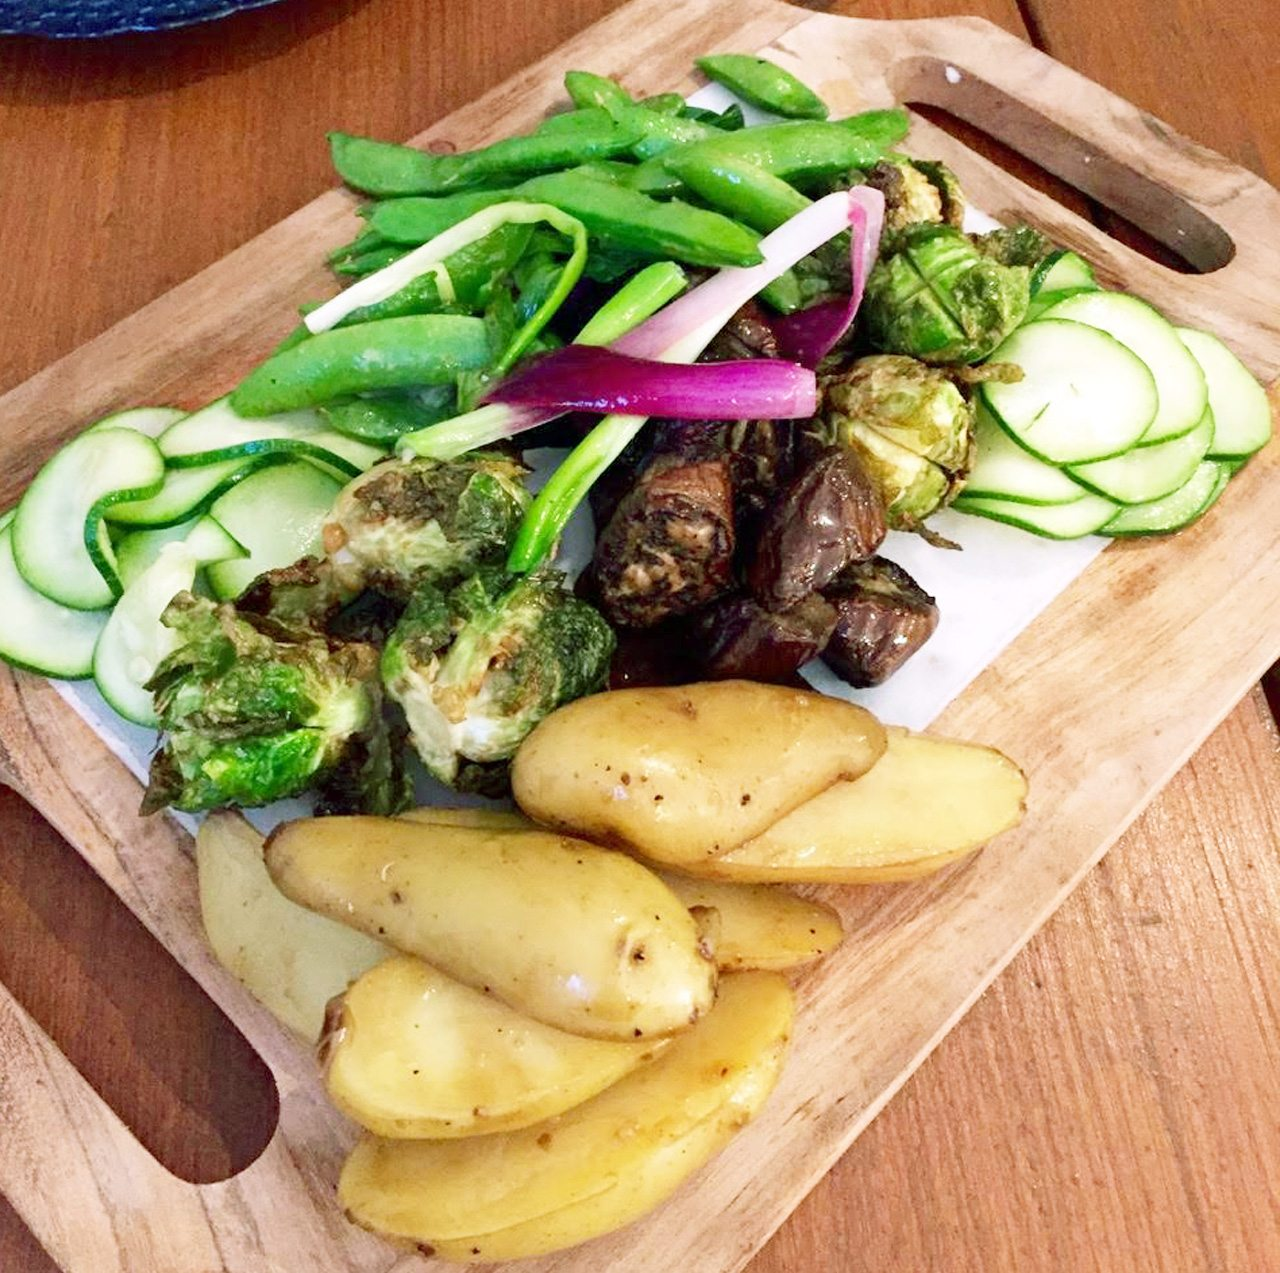 Meat Press's vegetable board